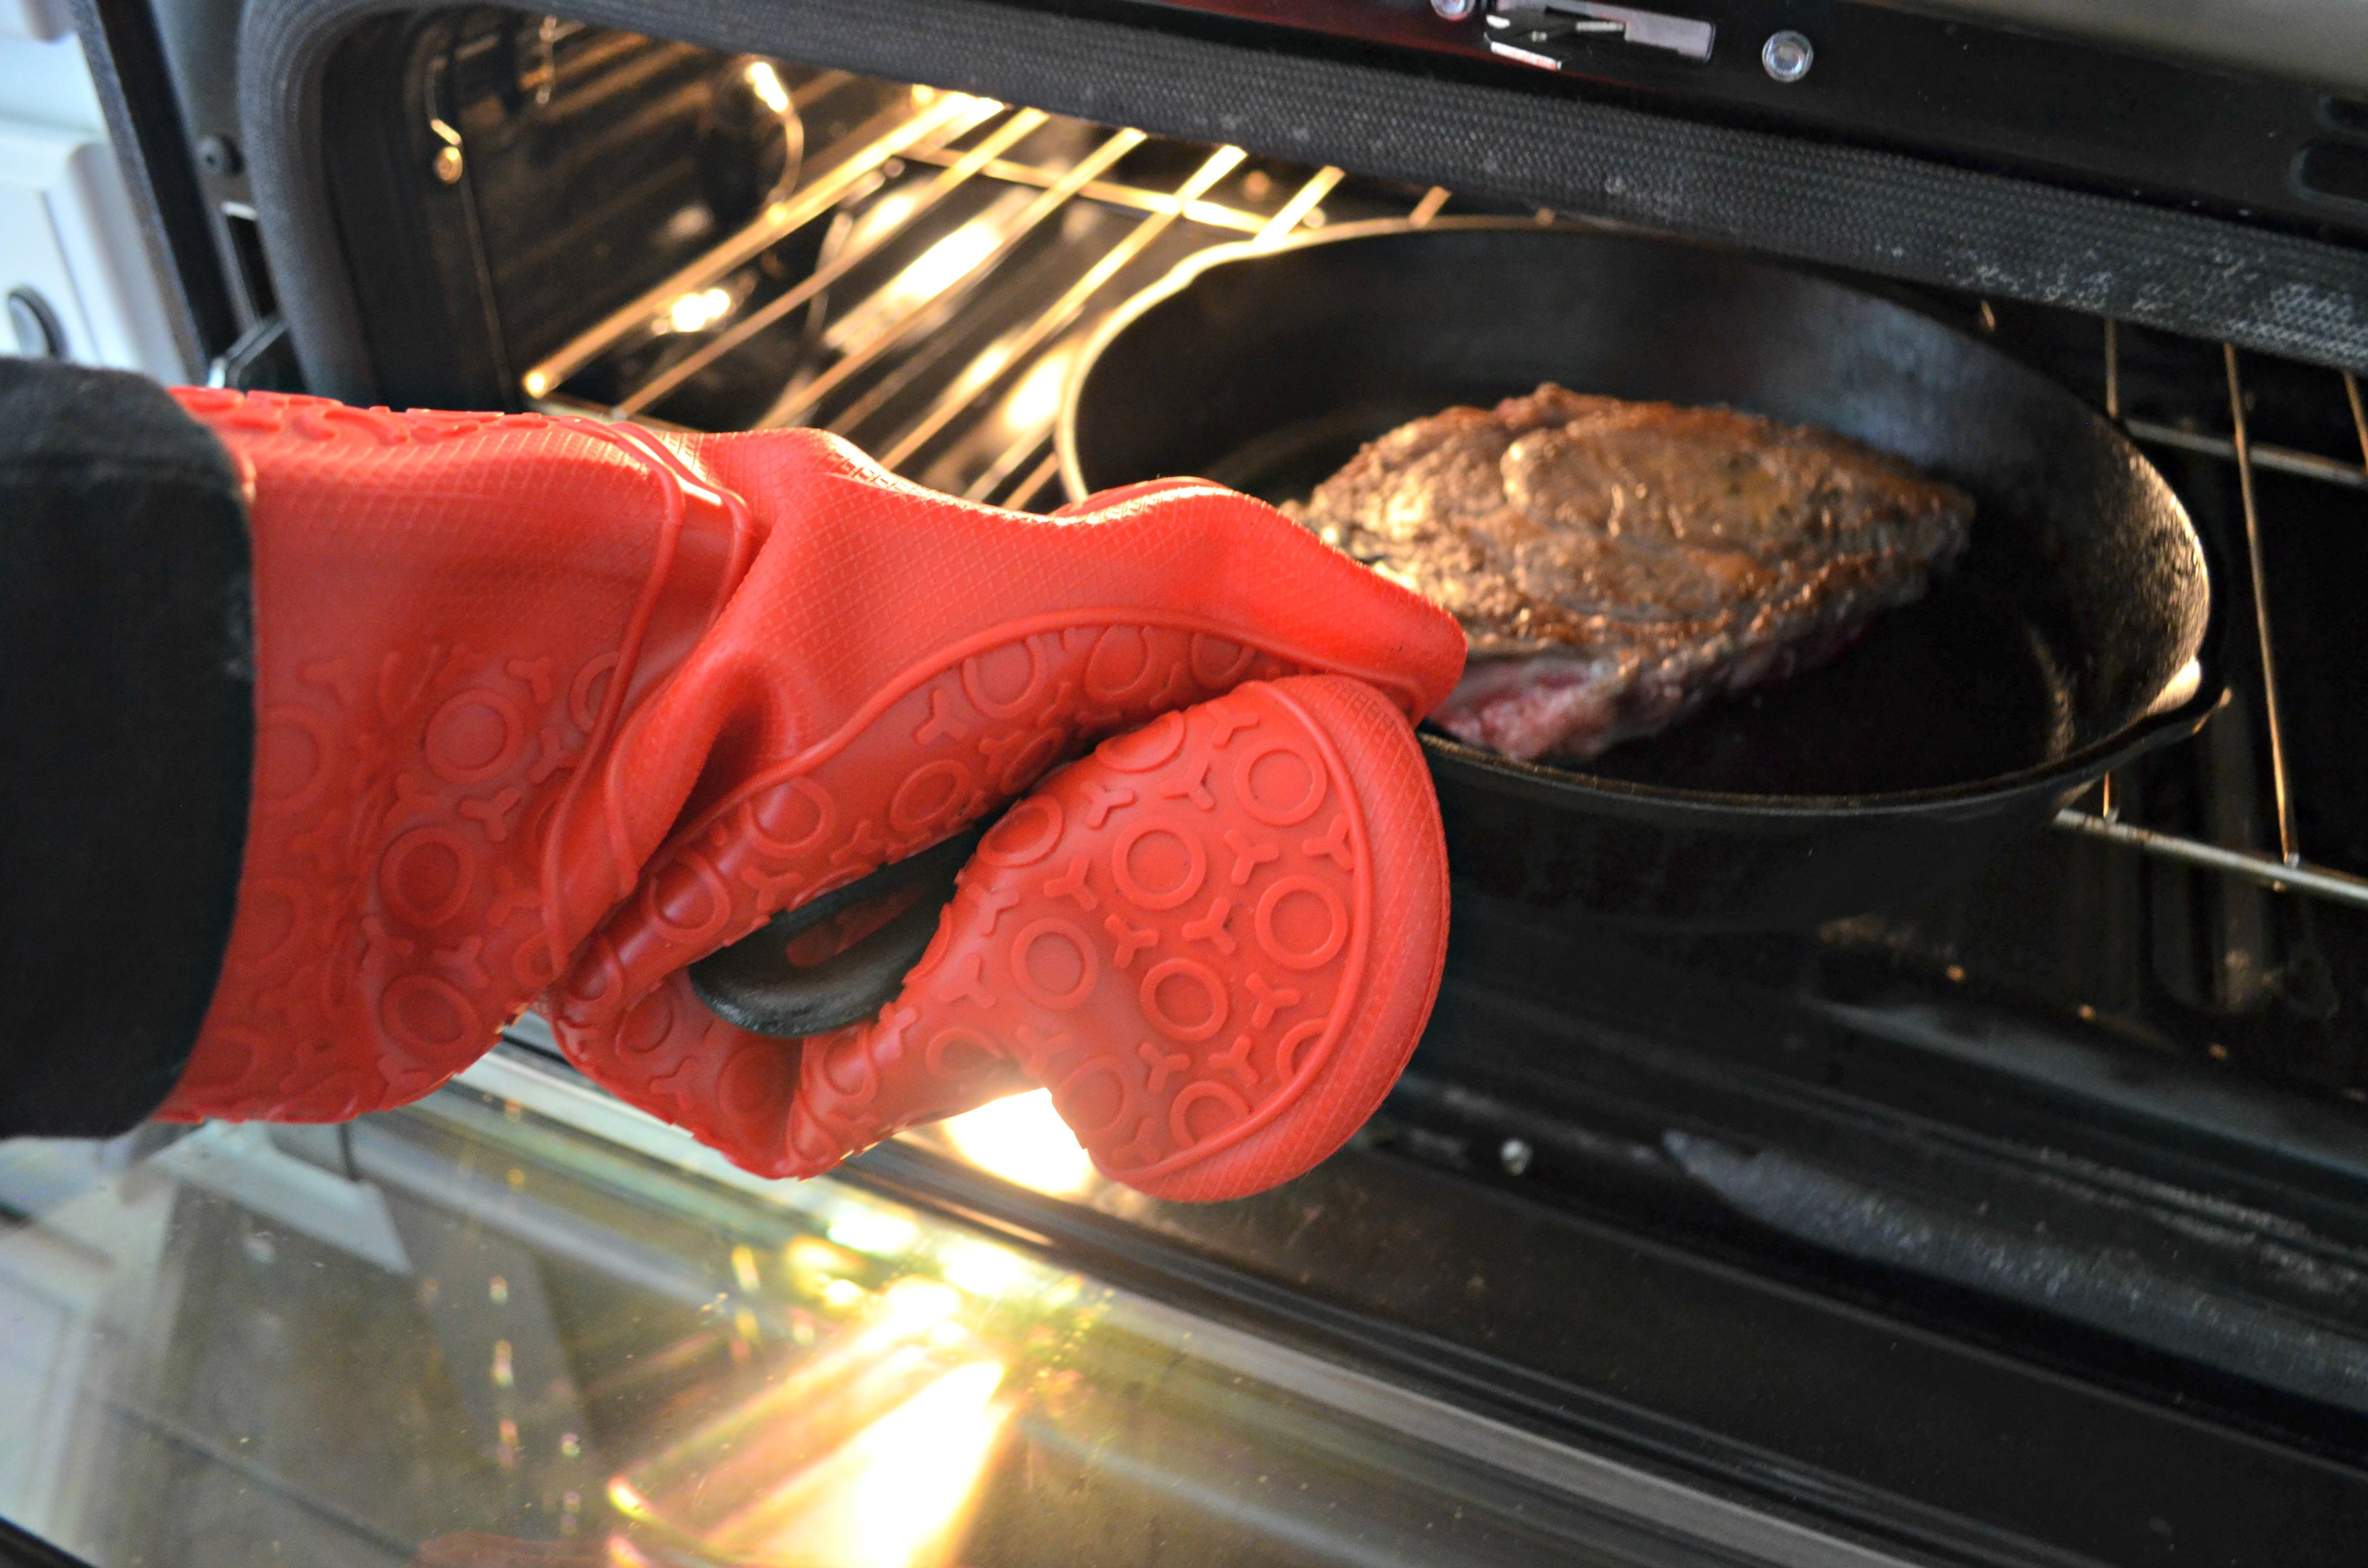 season, sear, and bake is the best way to cook steak – pictured here, pulling the pan from the oven